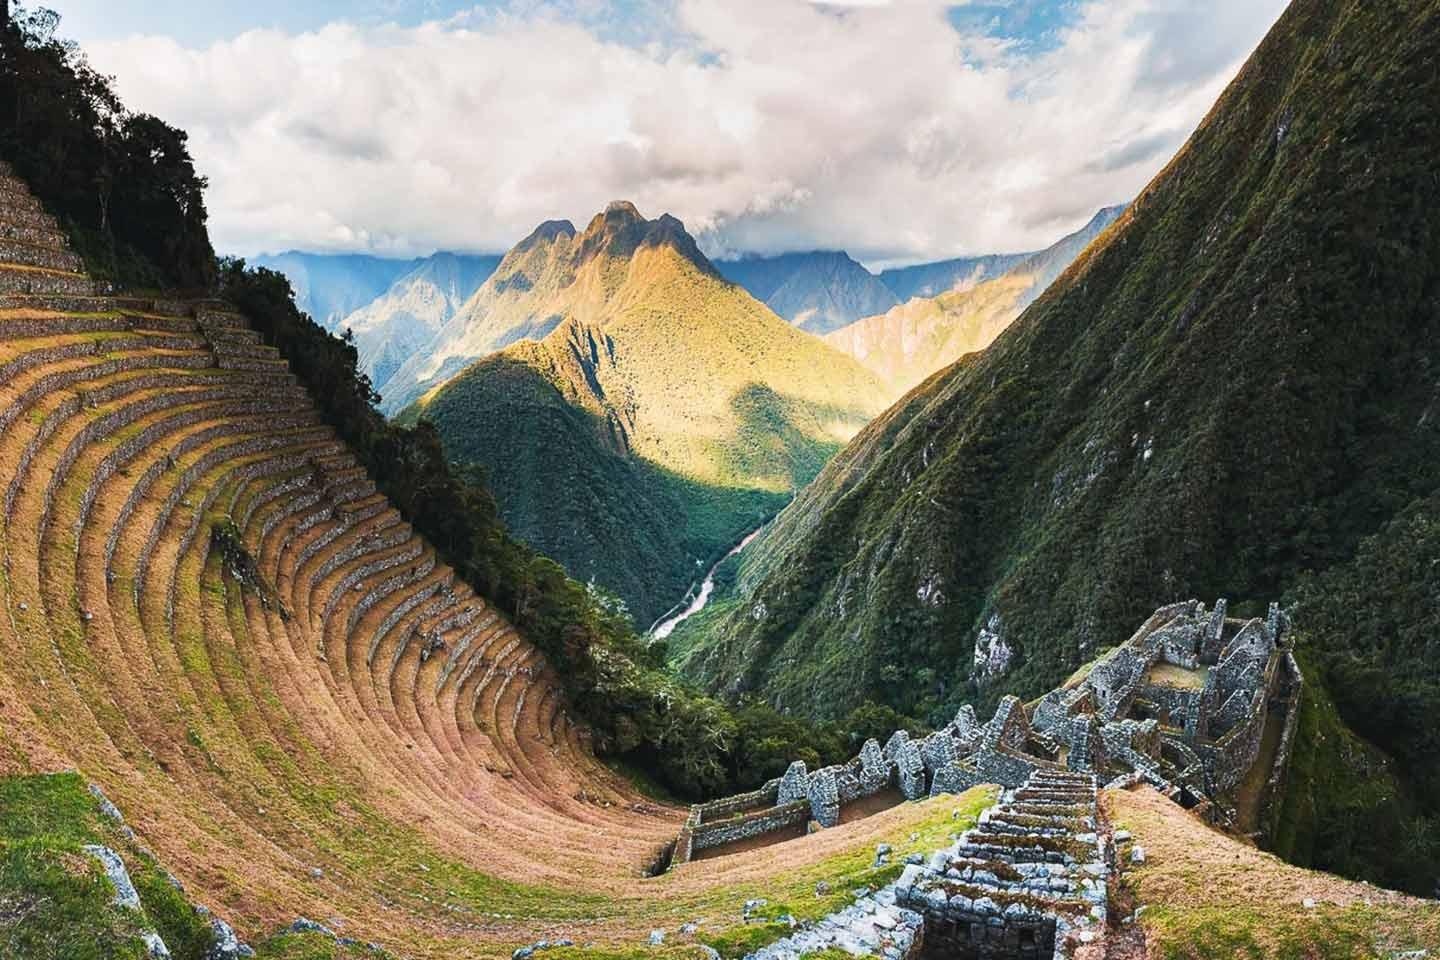 IS The Inca Trail a Dangerous Hike For Altitude sickness?